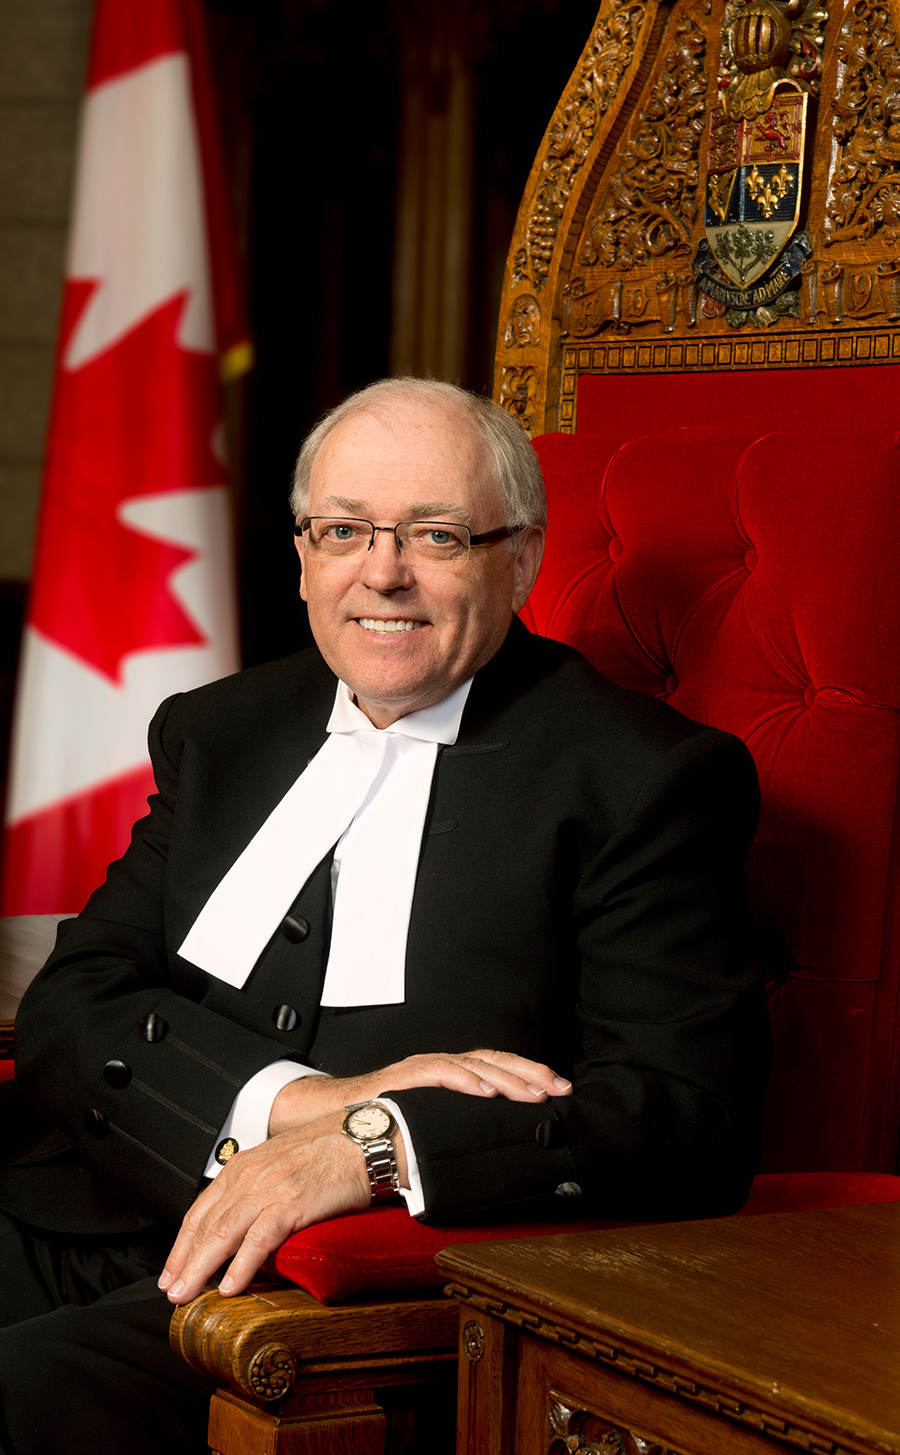 The Honourable George J. Furey, Q.C., Speaker of the Senate